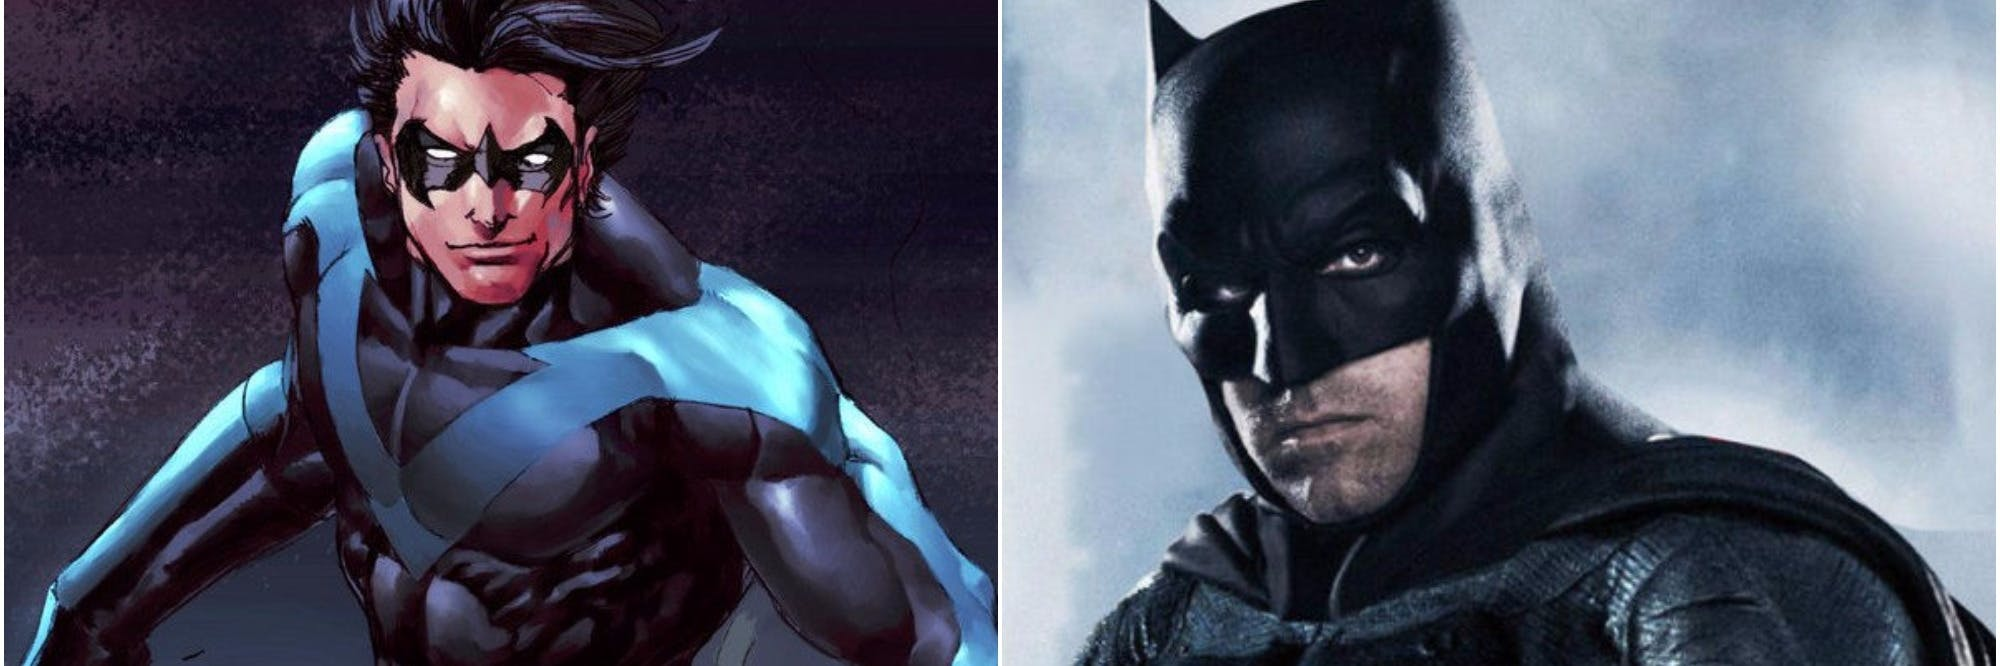 Will Nightwing replace Ben Affleck's Batman in the DCEU?